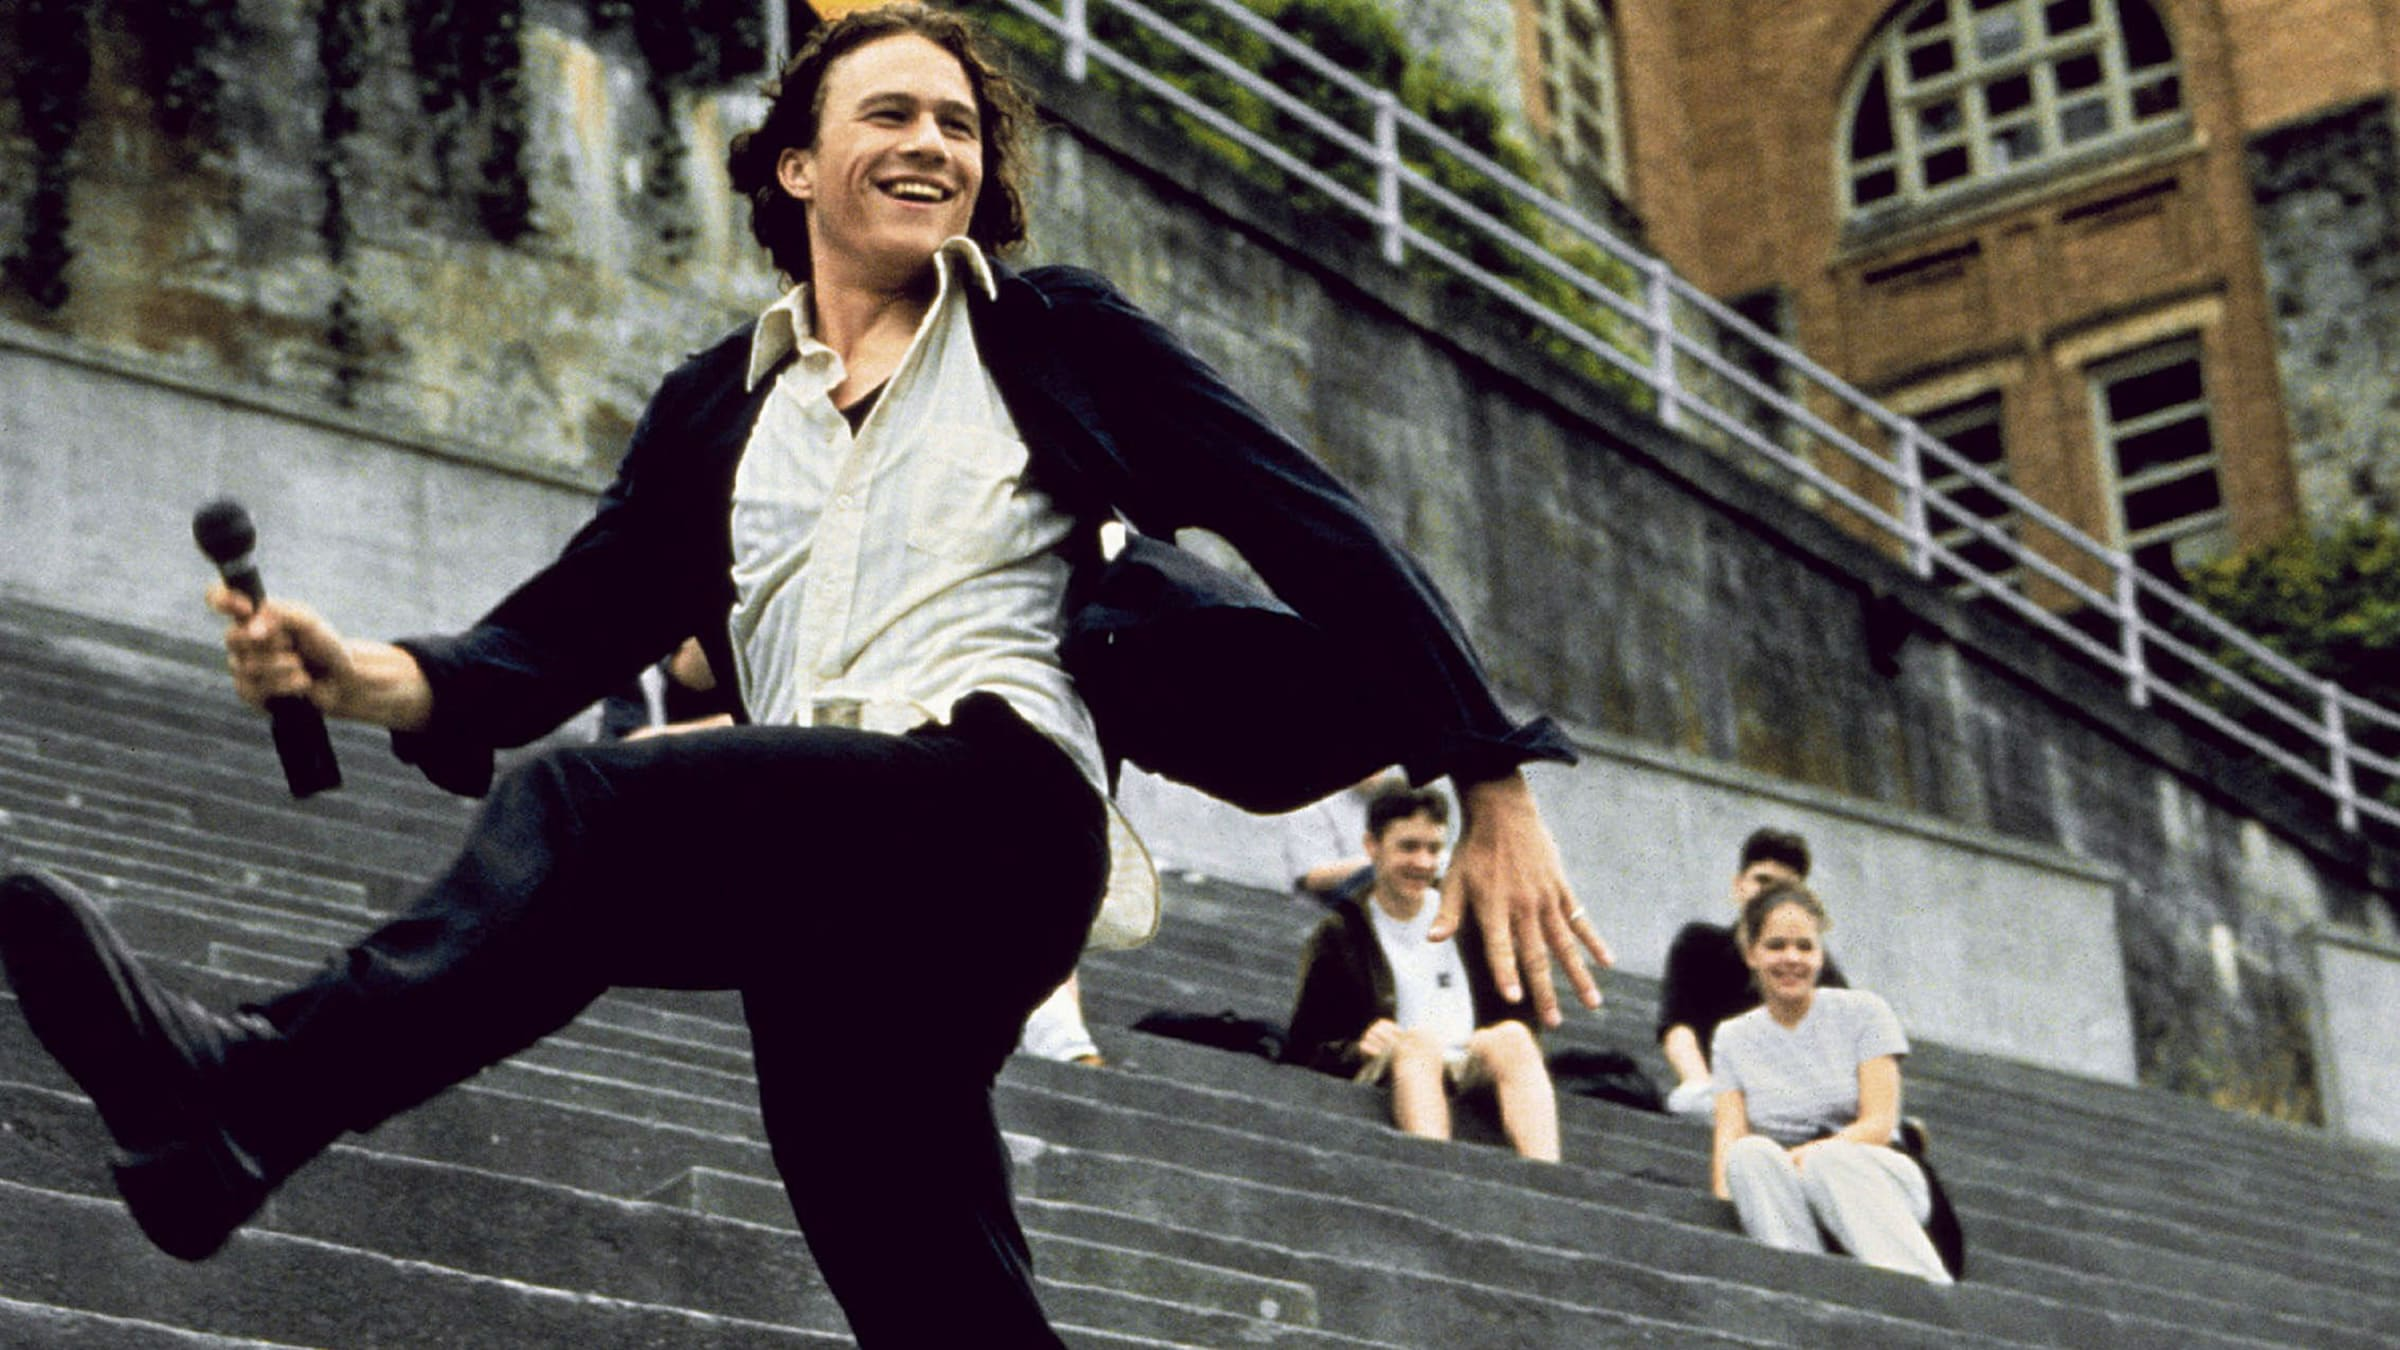 Film Night Ten Things I Hate About You: Remembering '10 Things I Hate About You': The Movie That